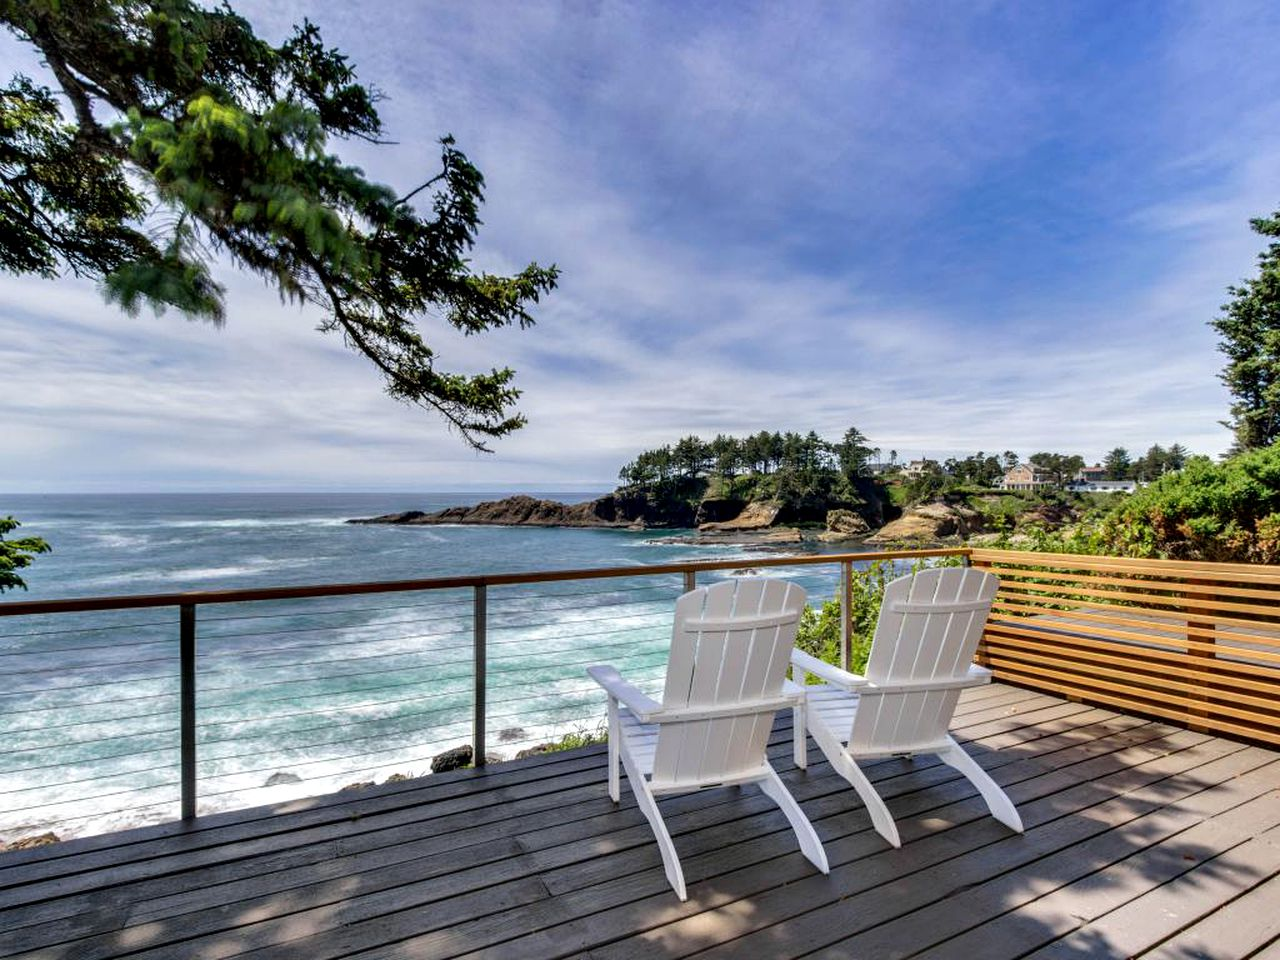 One of the best condos in Depoe Bay, Oregon